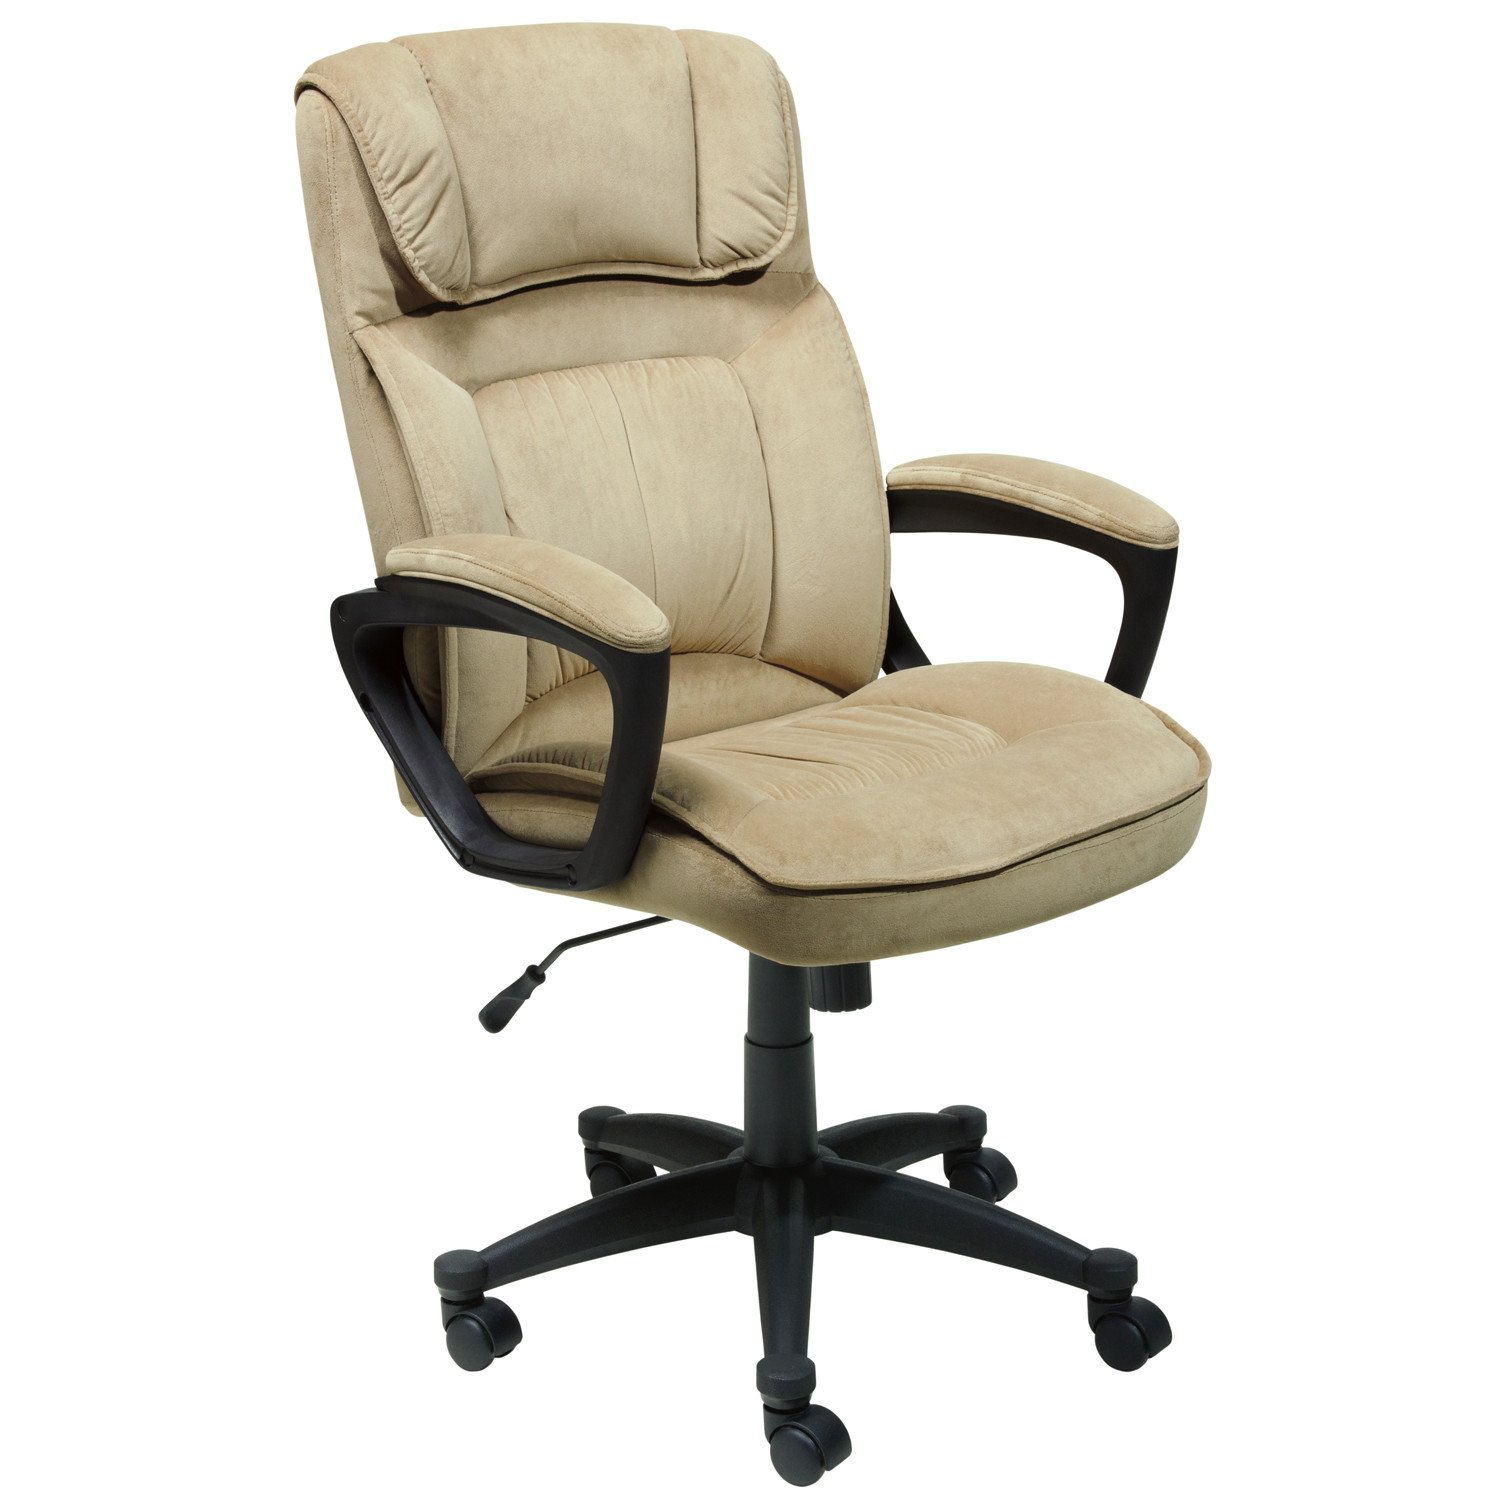 Amazon Serta at Home Cyrus Executive High Back fice Chair